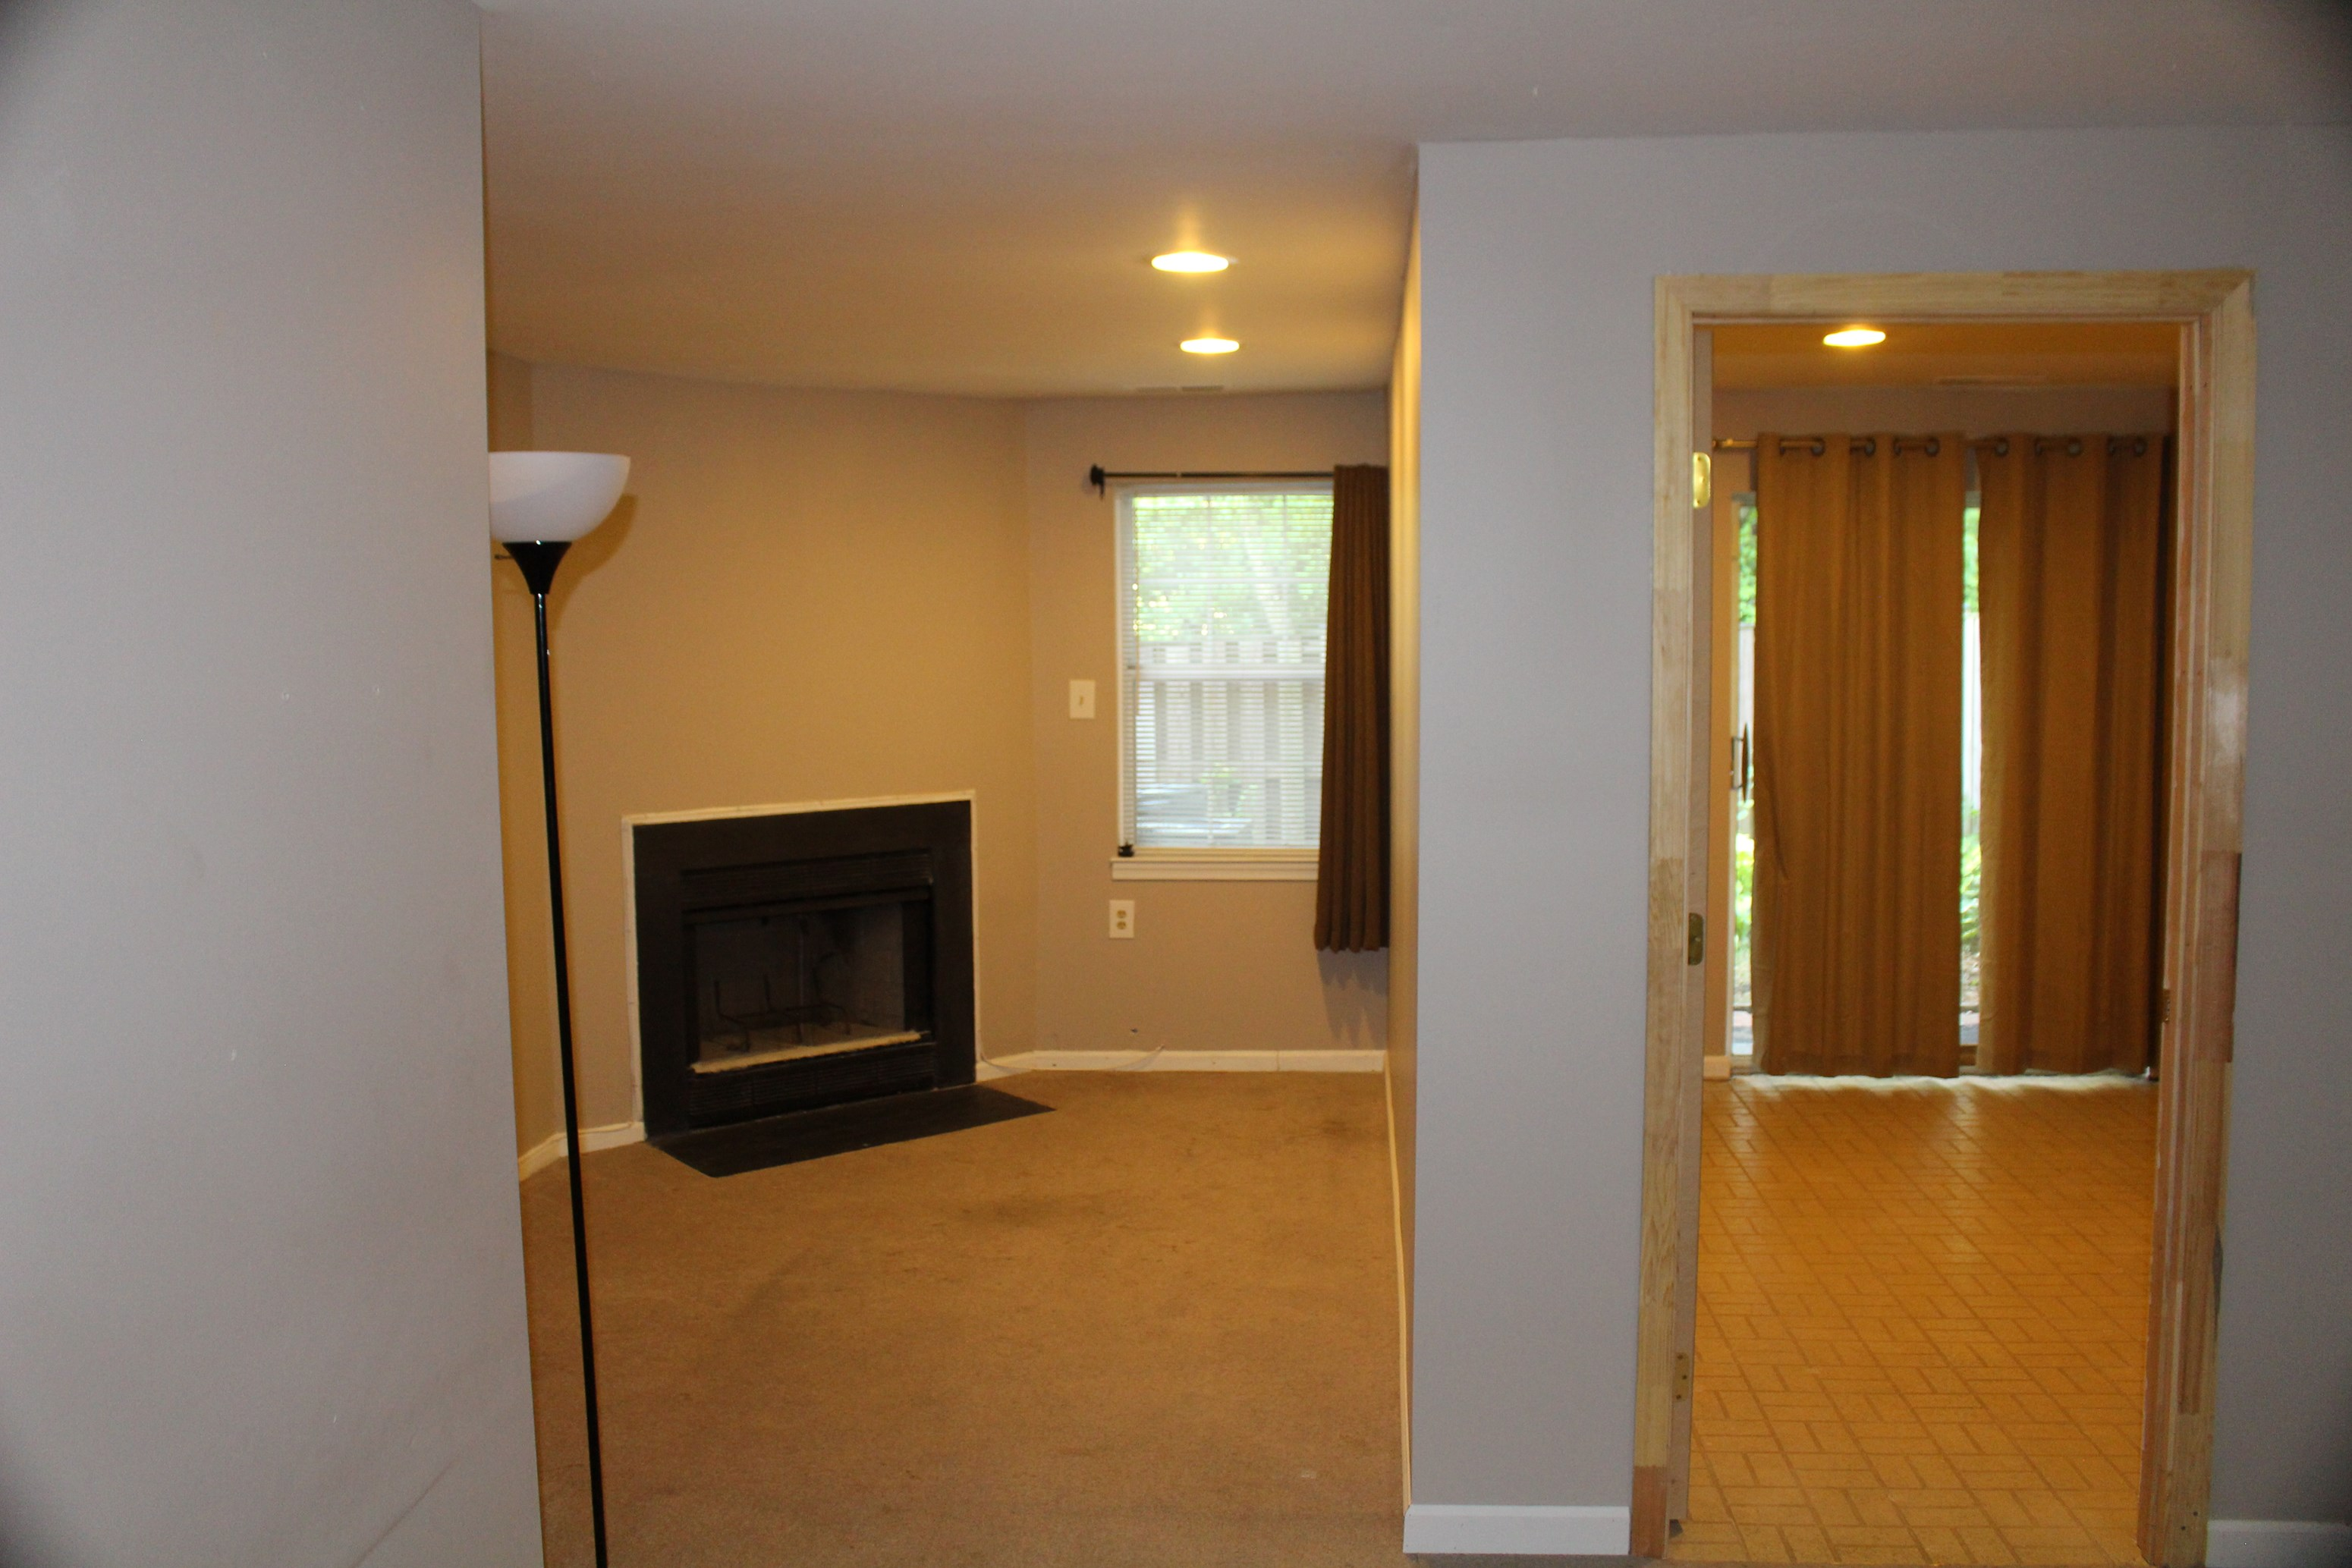 basement for rent in manassas va 785739 sulekha roommates